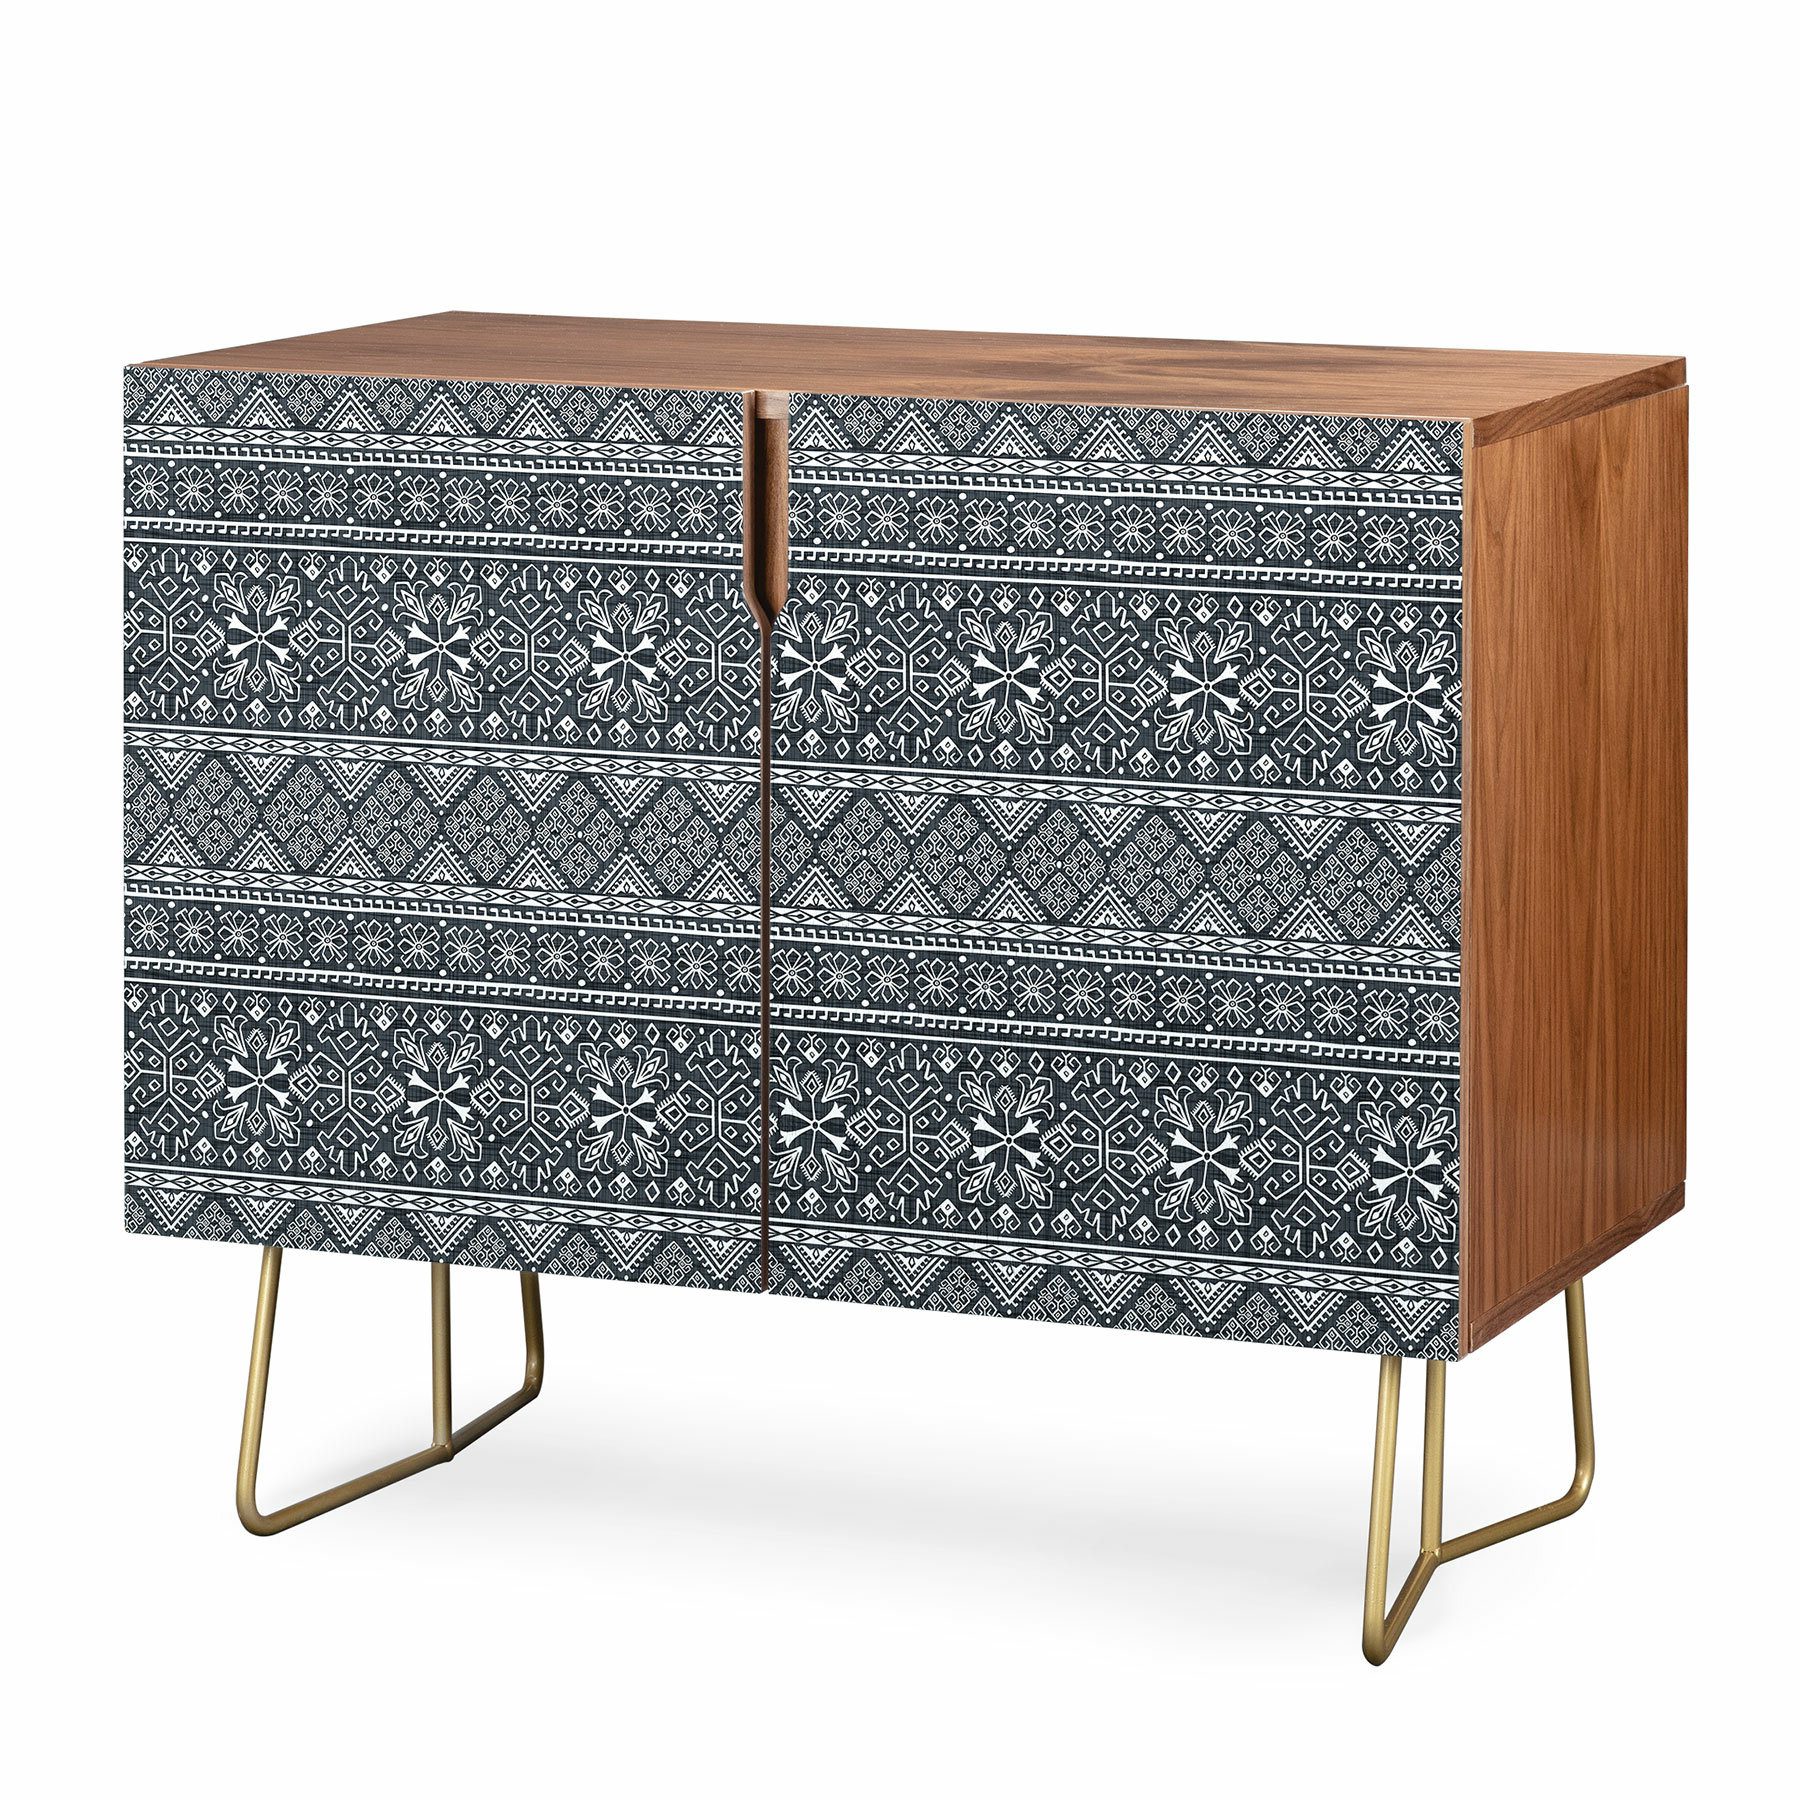 Modern East Urban Home Sideboards + Buffets | Allmodern Throughout Modele 7 Geometric Credenzas (View 15 of 20)